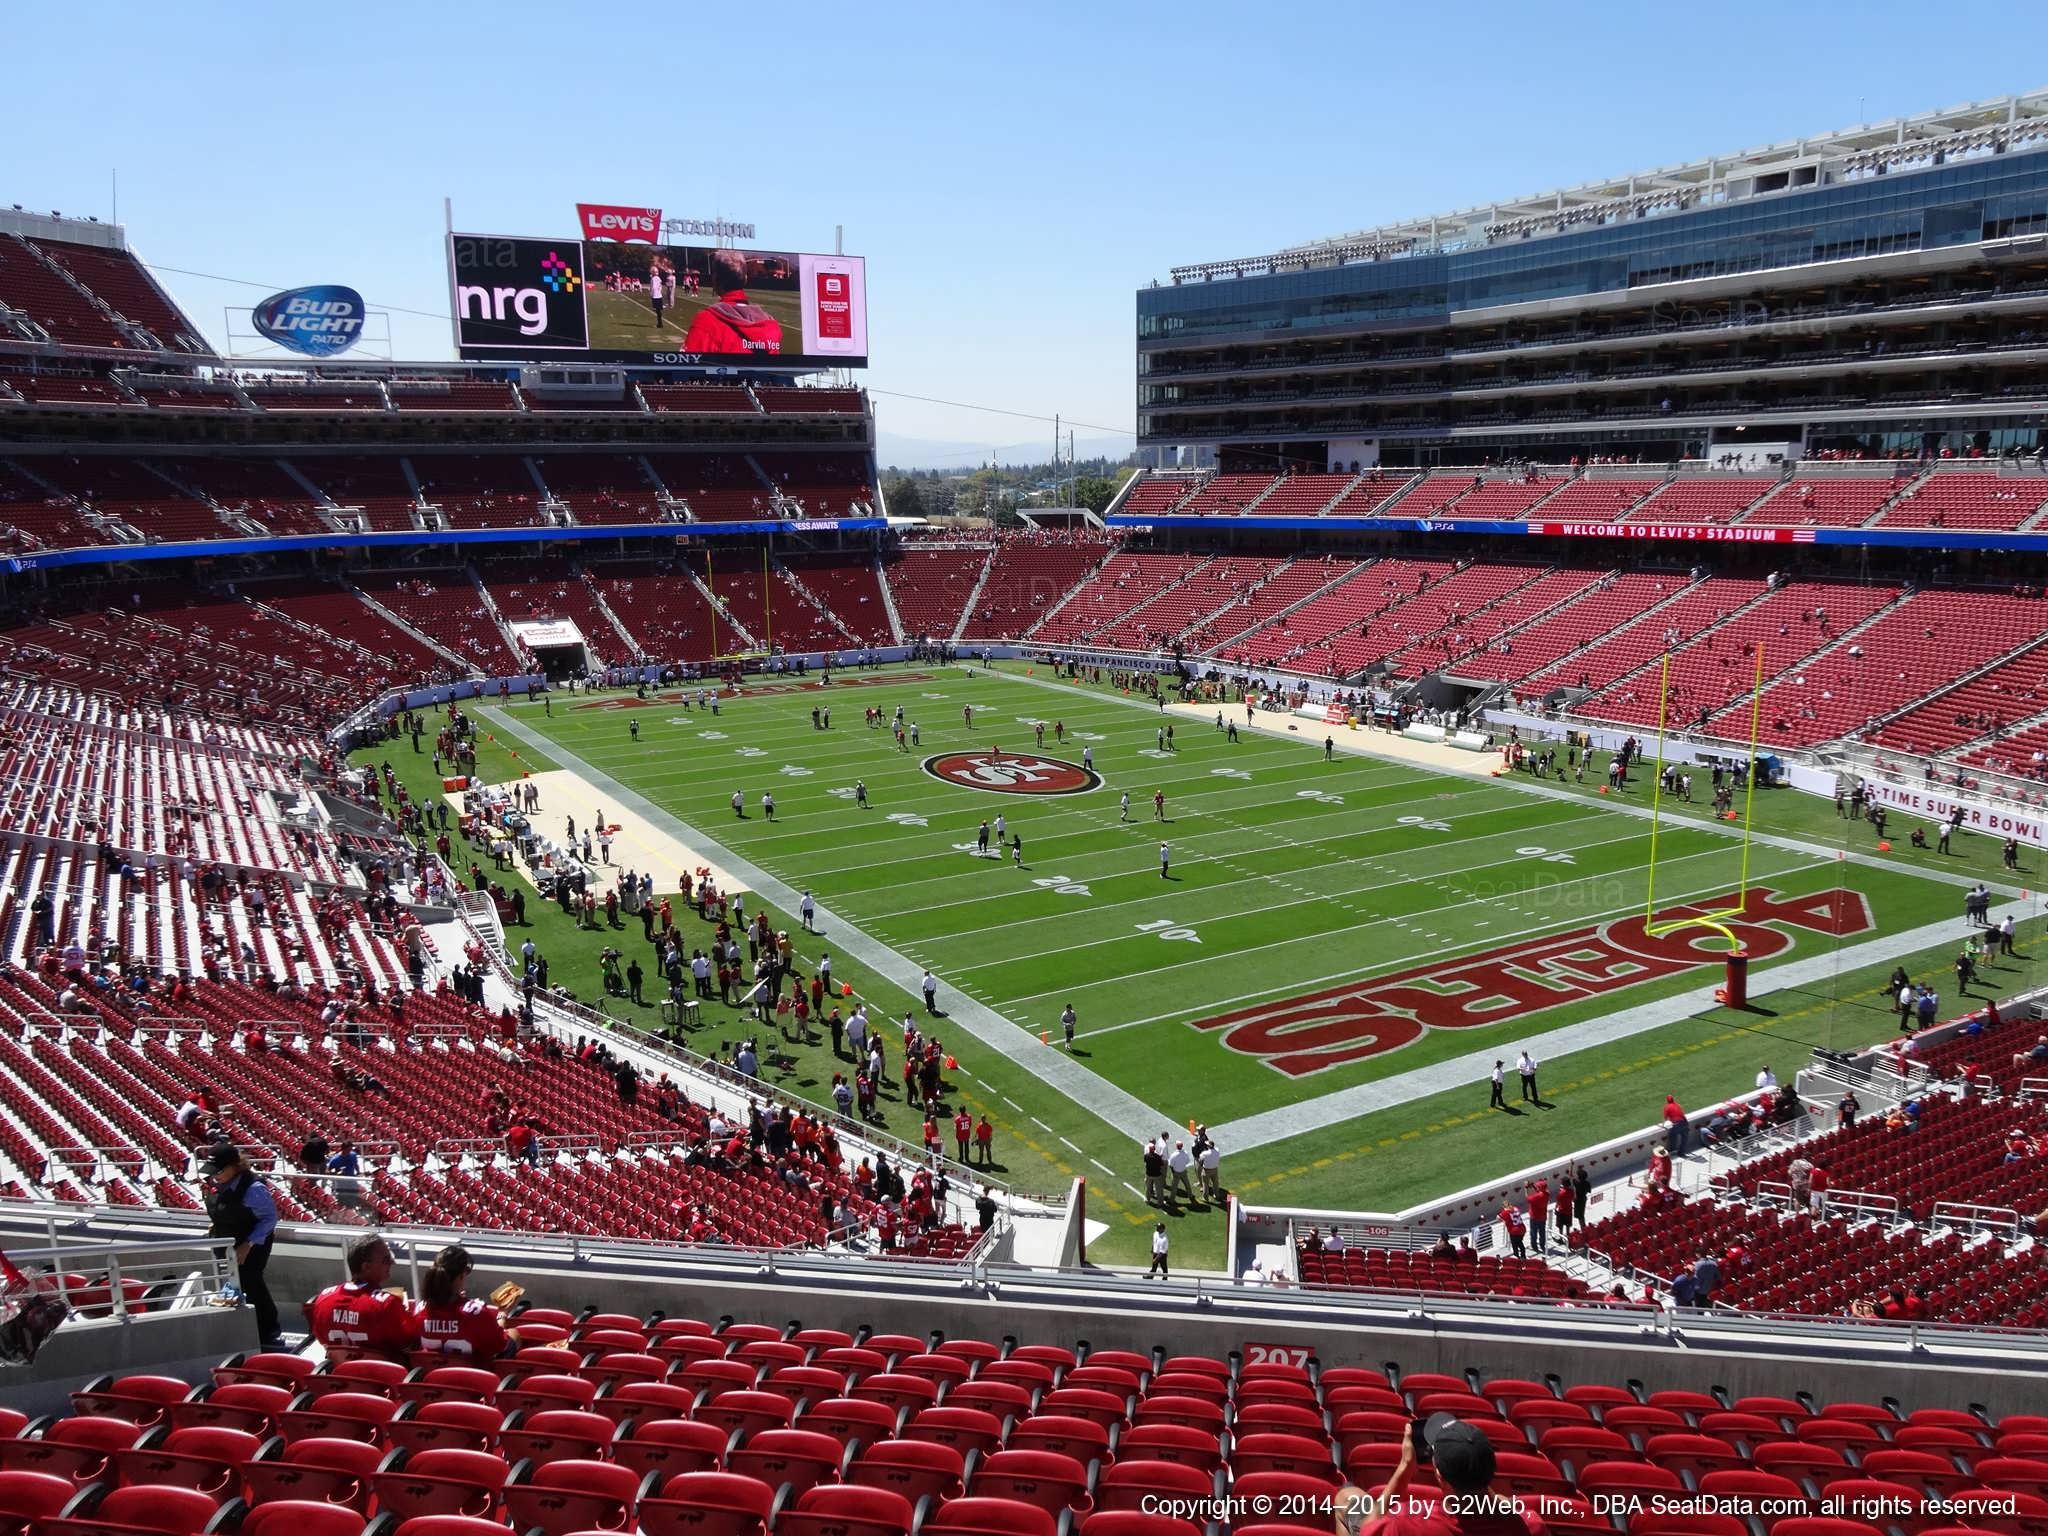 Seat view from section 207 at Levi's Stadium, home of the San Francisco 49ers